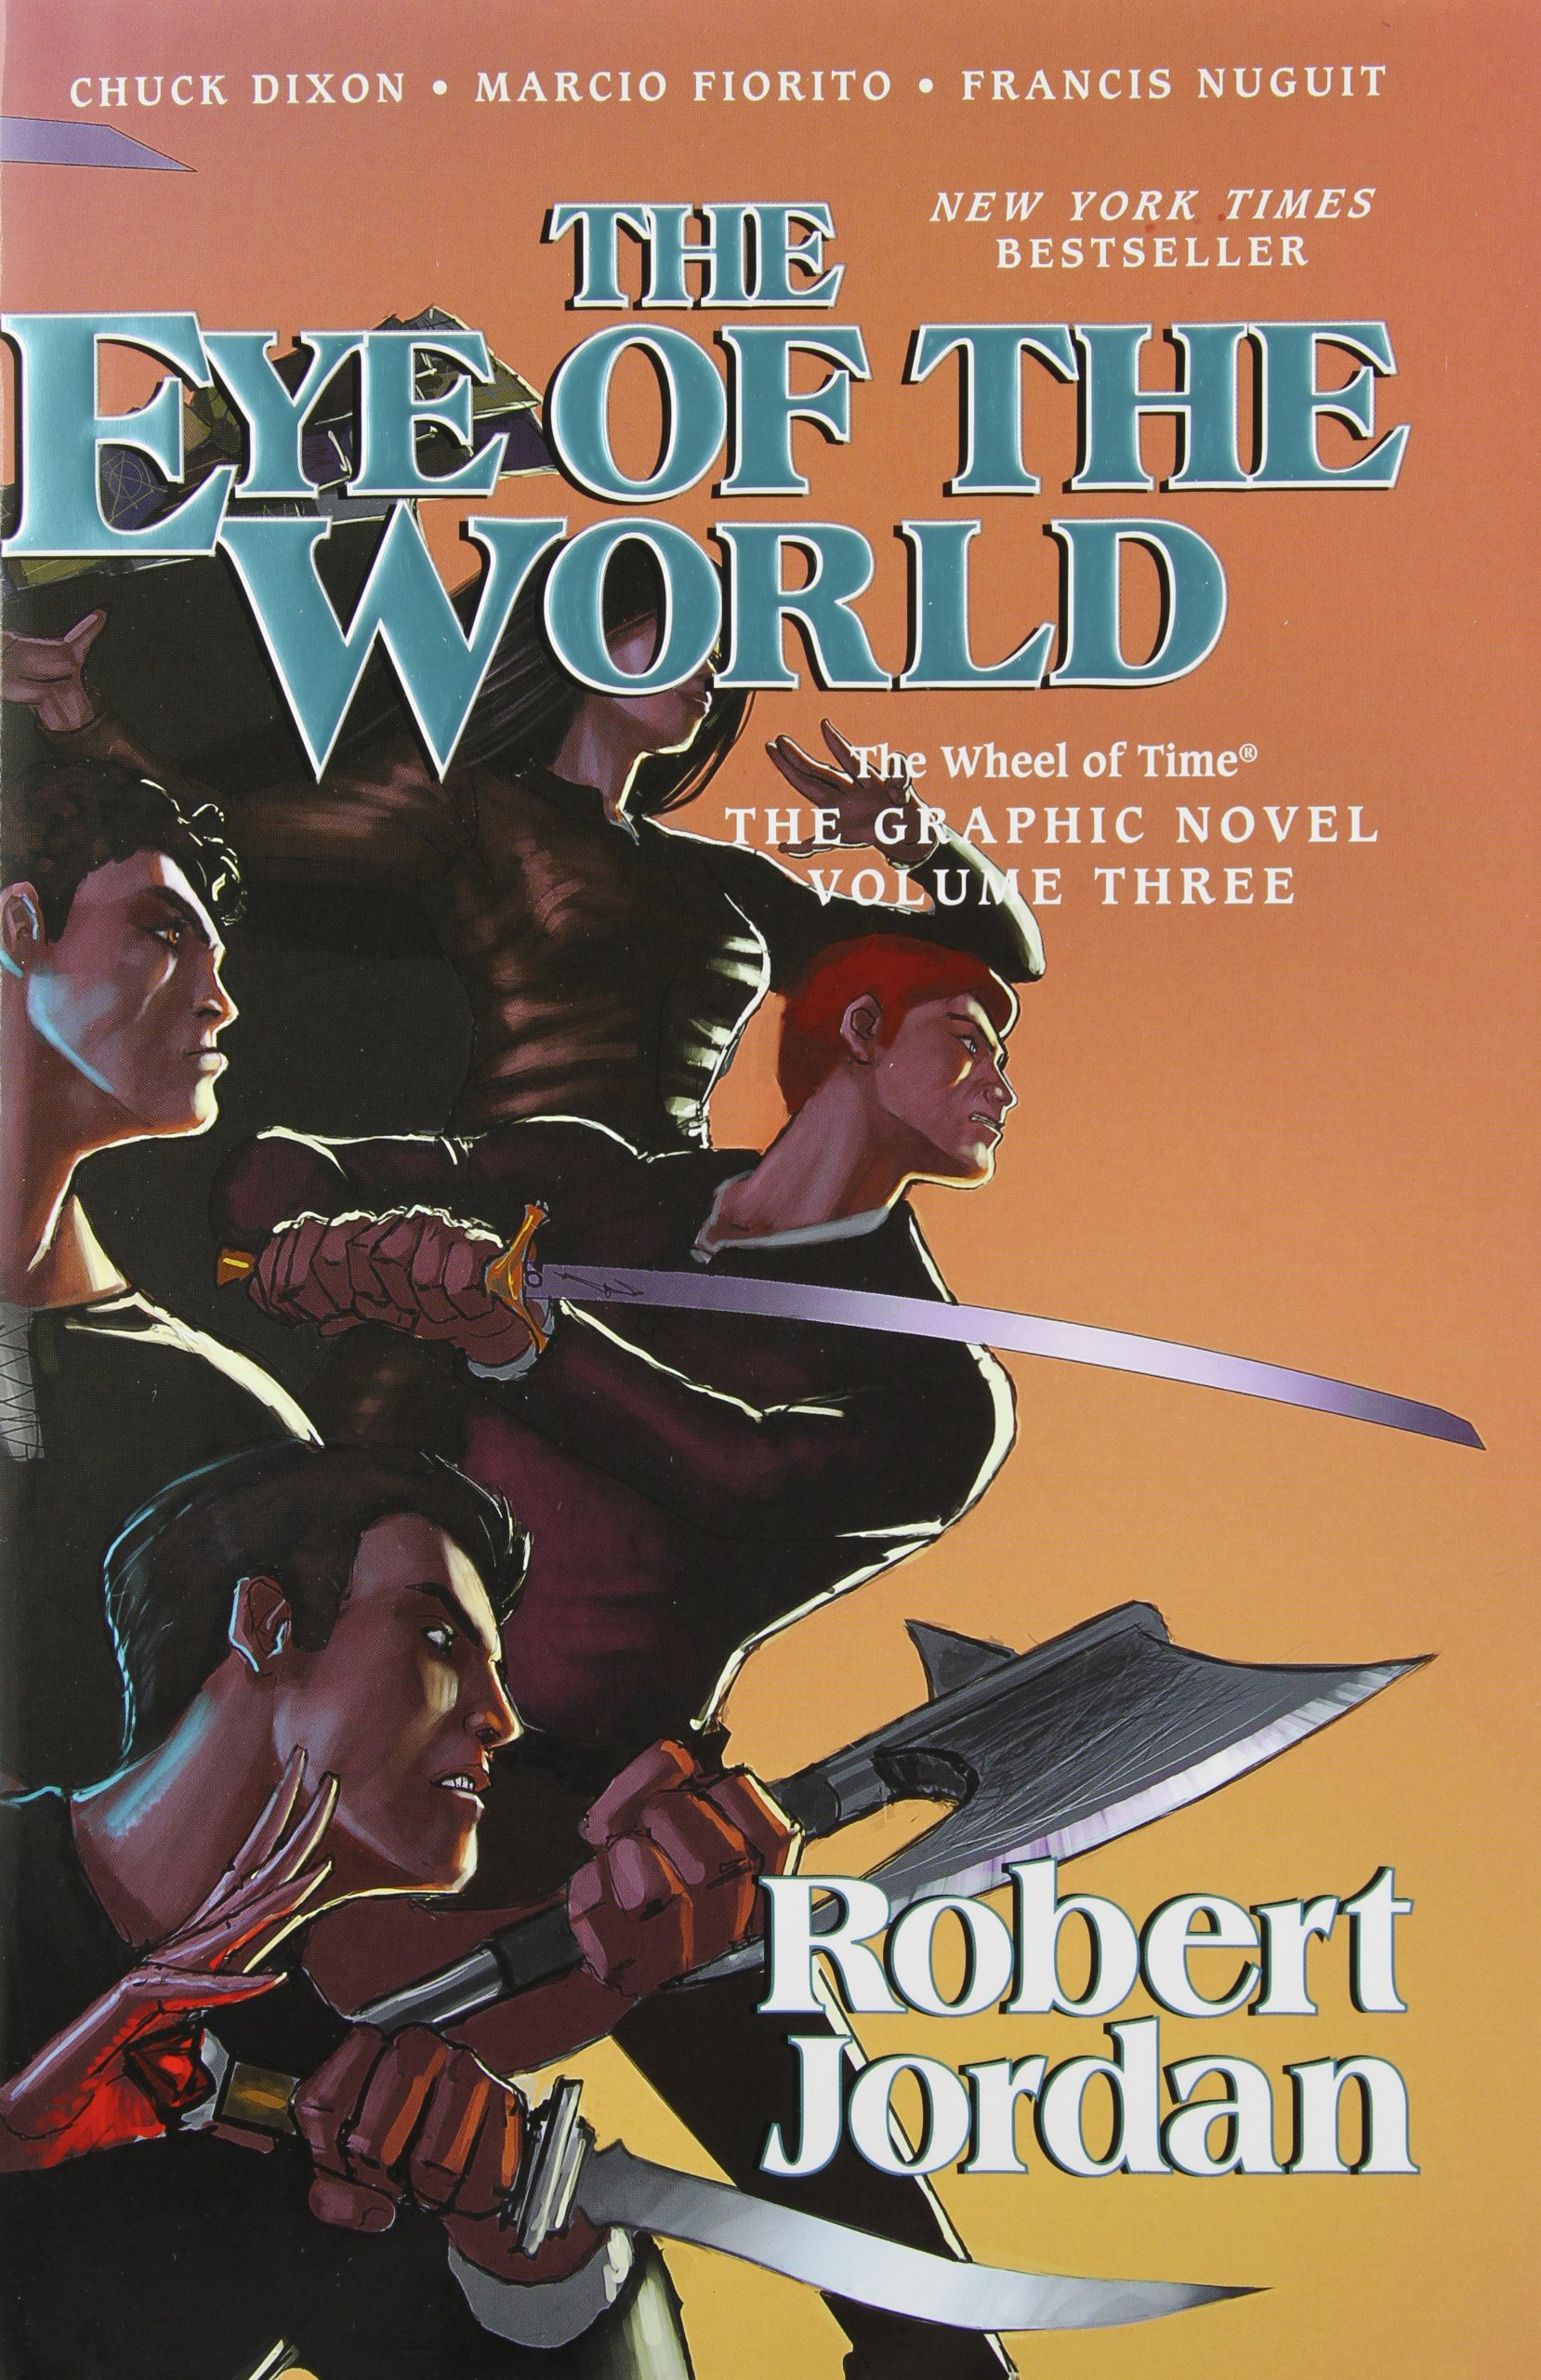 5d1585af0cbd4 The Eye of the World: The Graphic Novel, Volume Three (Wheel of Time ...